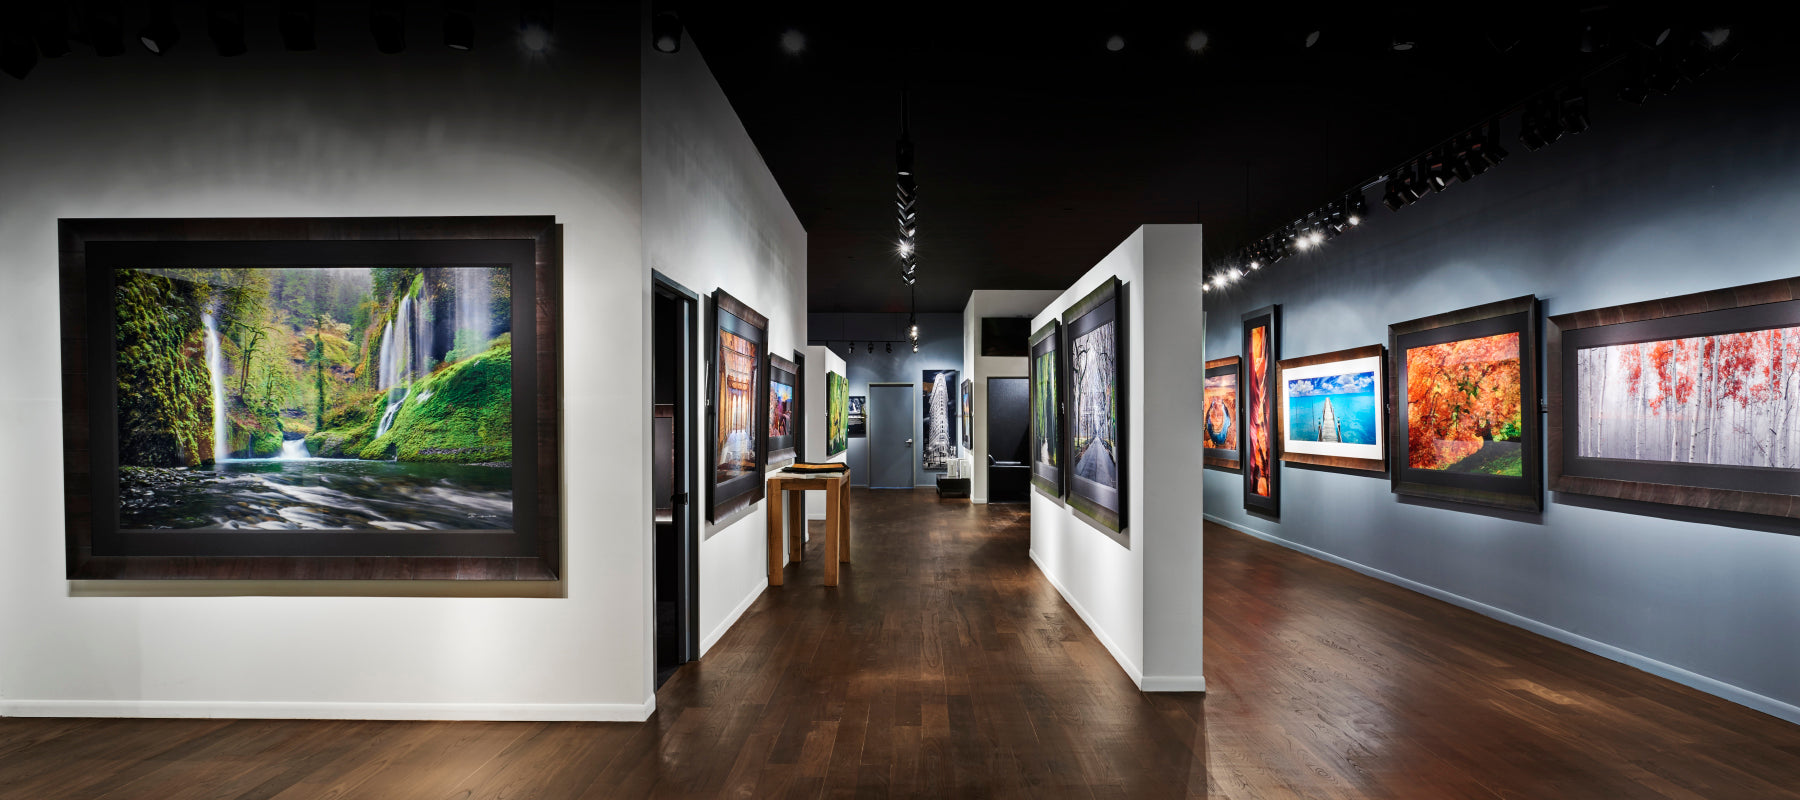 Visit the LIK Fine Art Gallery at Dallas' NorthPark Center